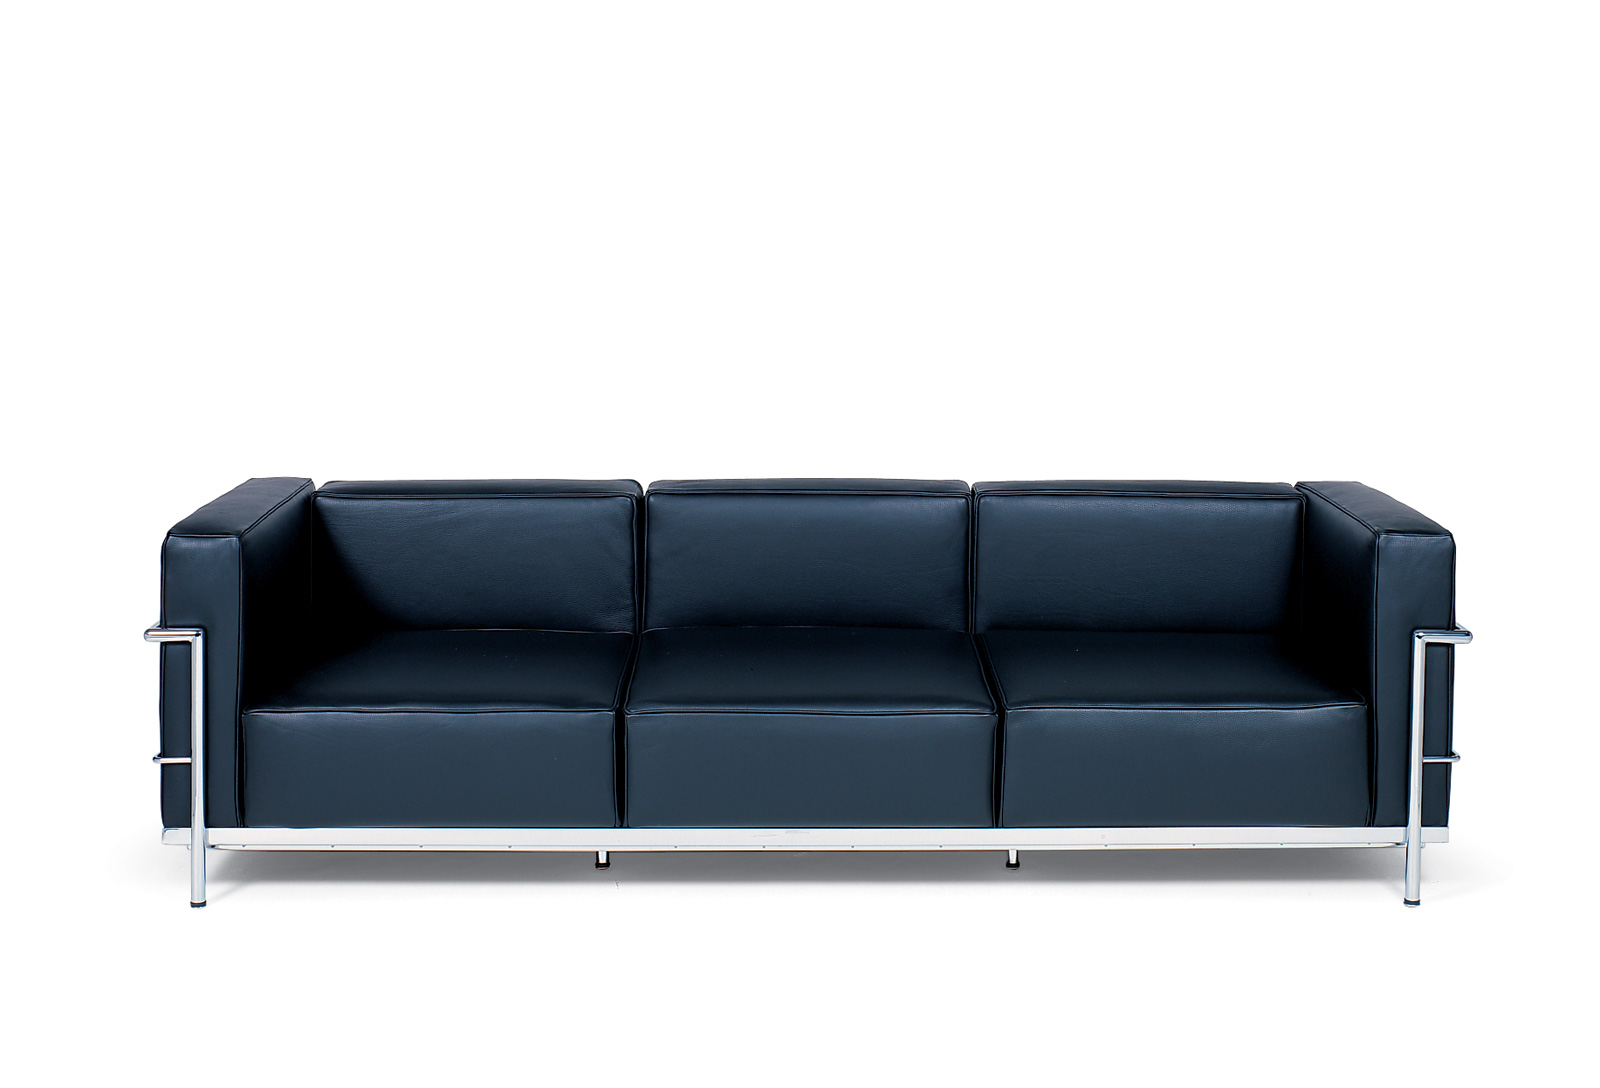 sofa le corbusier le corbusier sofa furniture couch thesofa. Black Bedroom Furniture Sets. Home Design Ideas